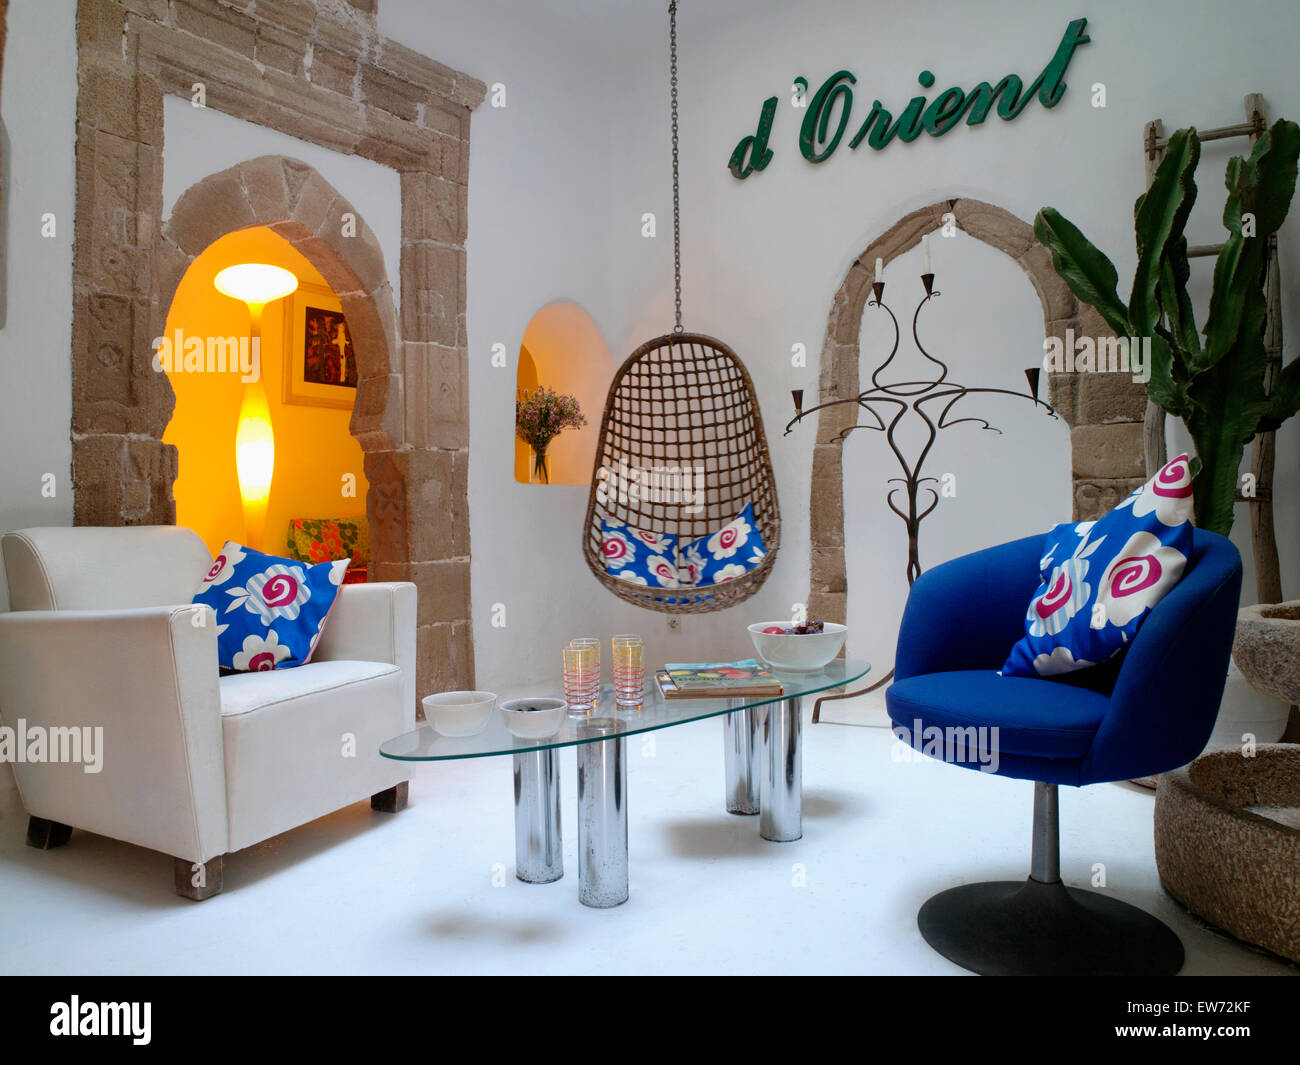 Stock photo white and blue armchairs in modern moroccan living room with glass table and hanging chair beside arch with lighted lamp